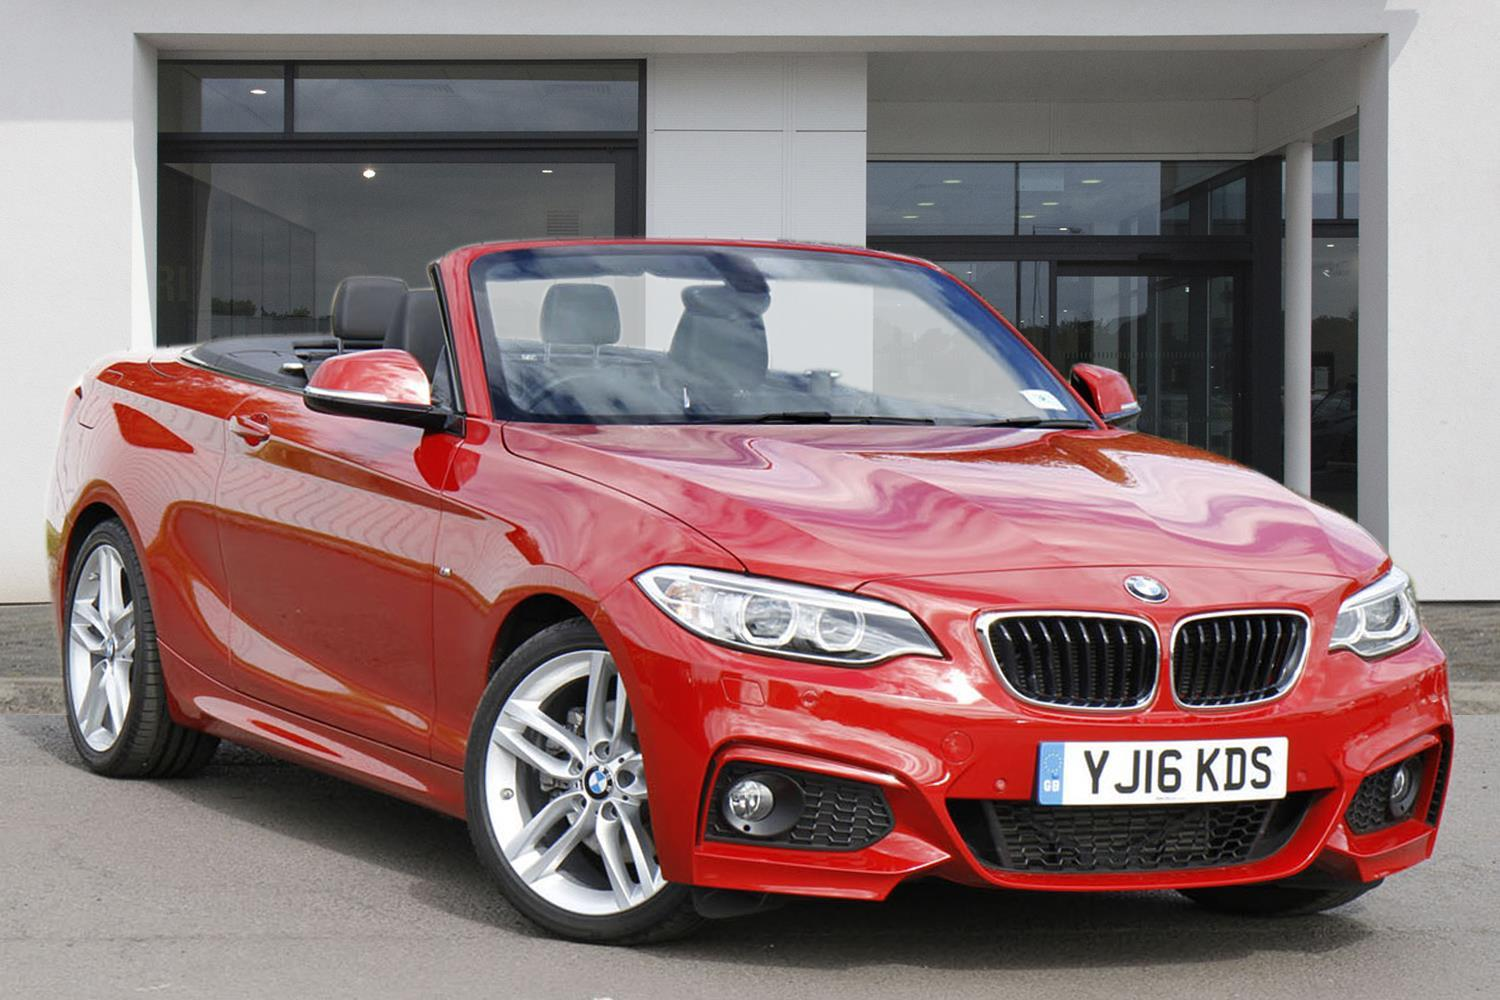 BMW 2 Series Convertible YJ16KDS - Image 1